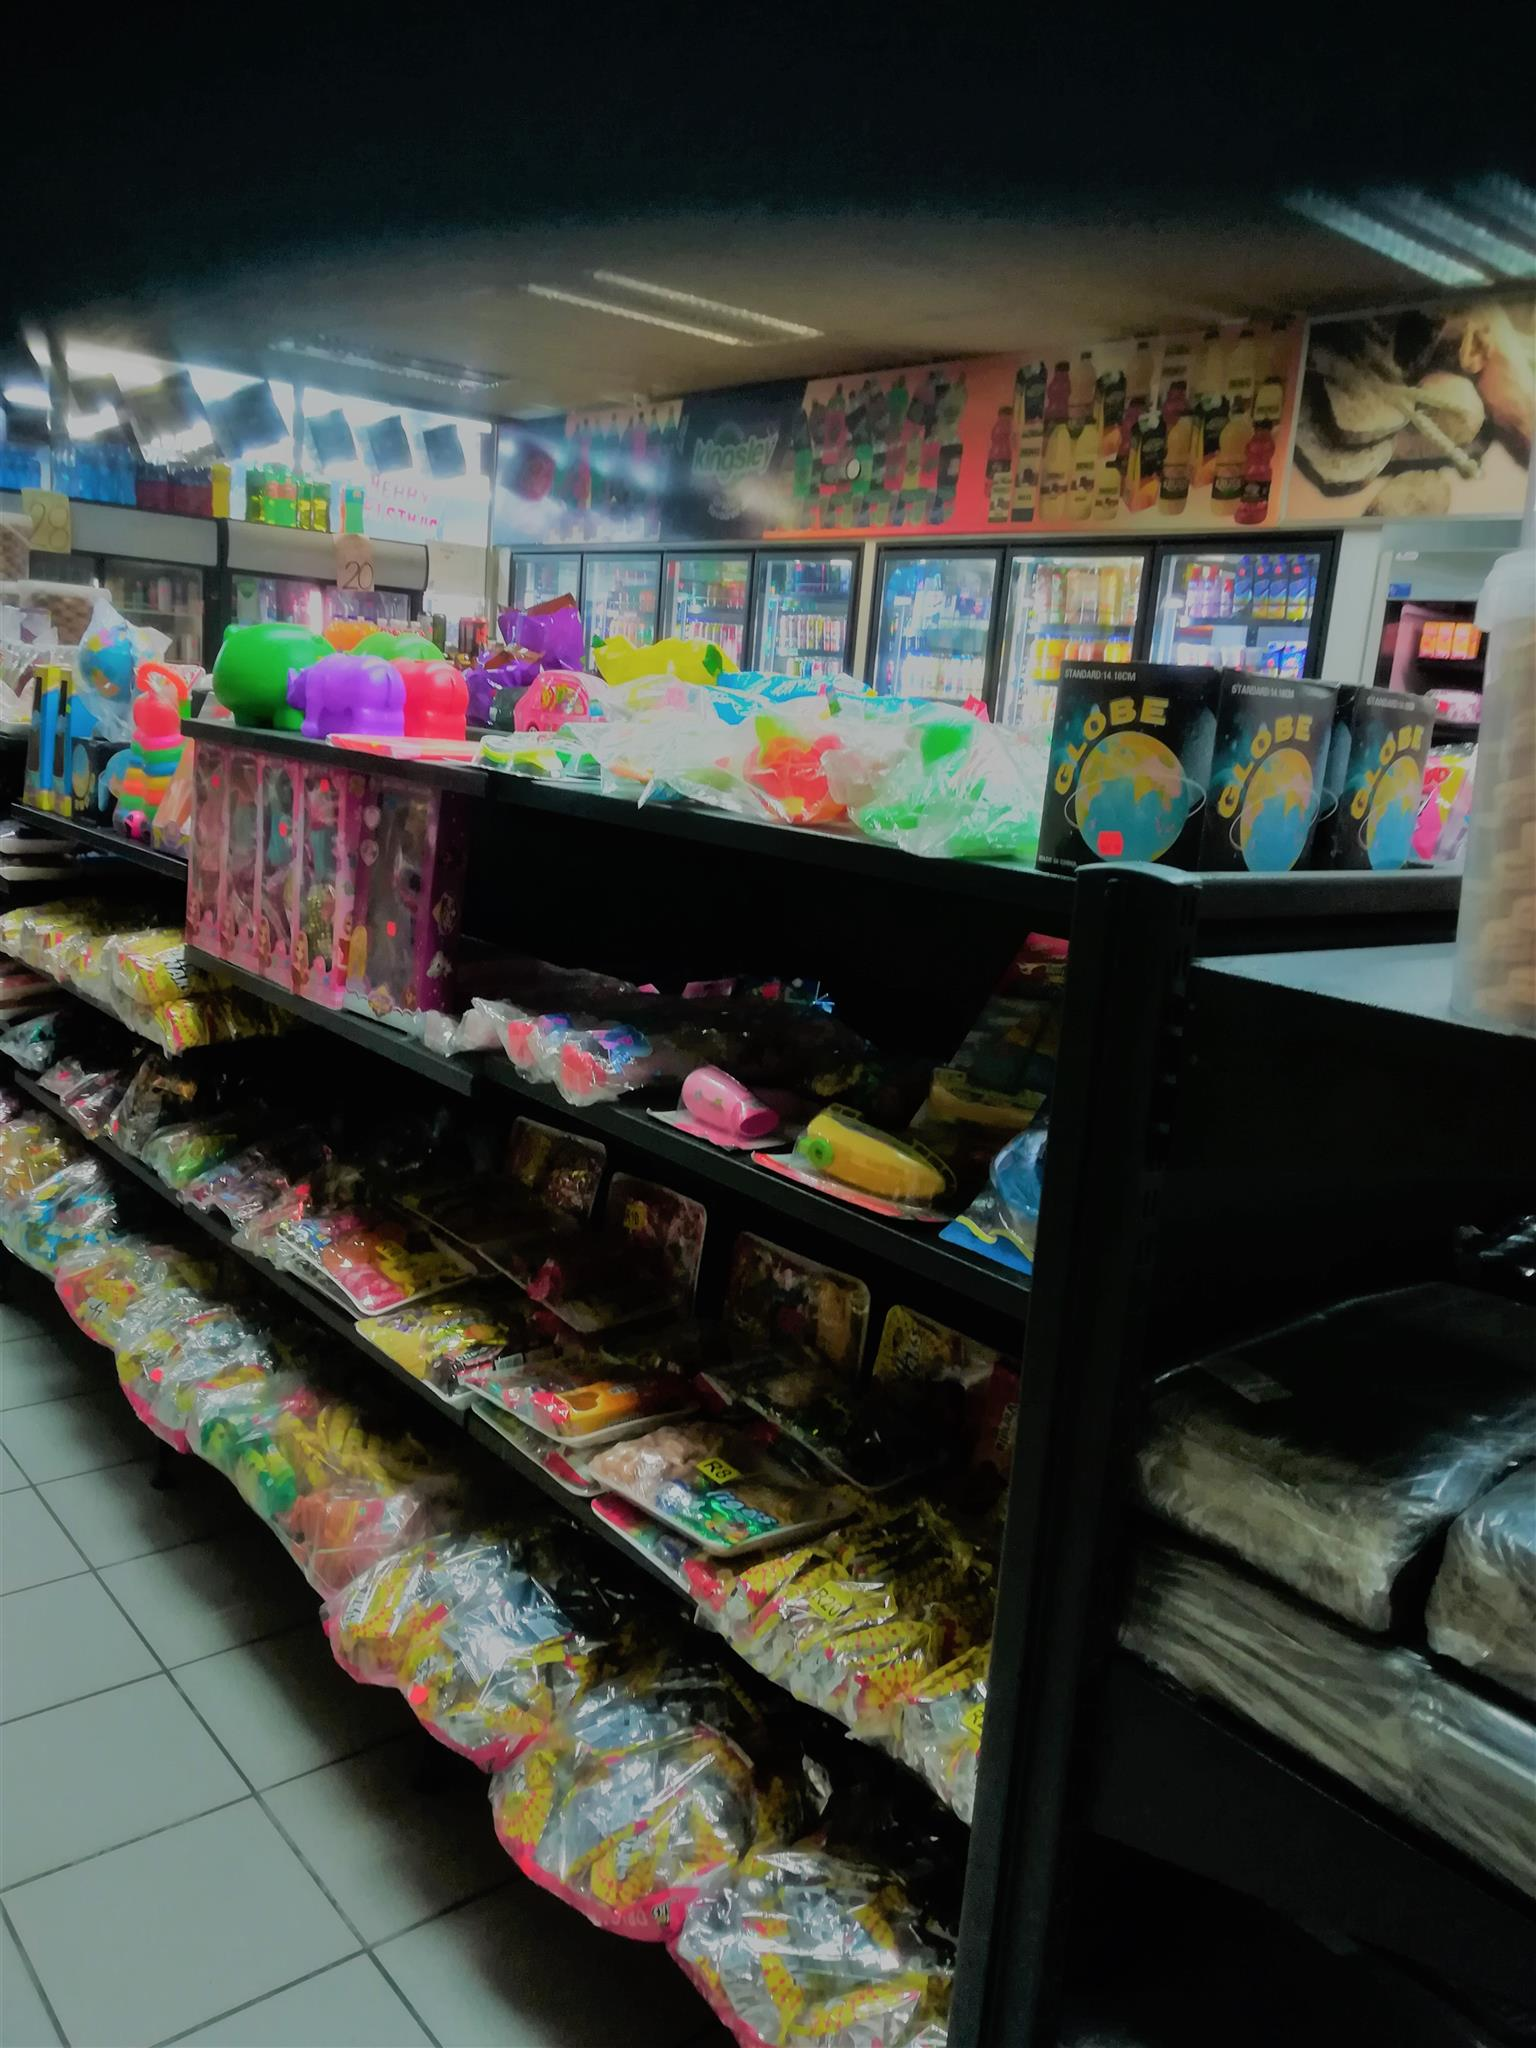 Take Away & Bakery For Sale In The East Rand In A Busy Taxi Rank & Train Station